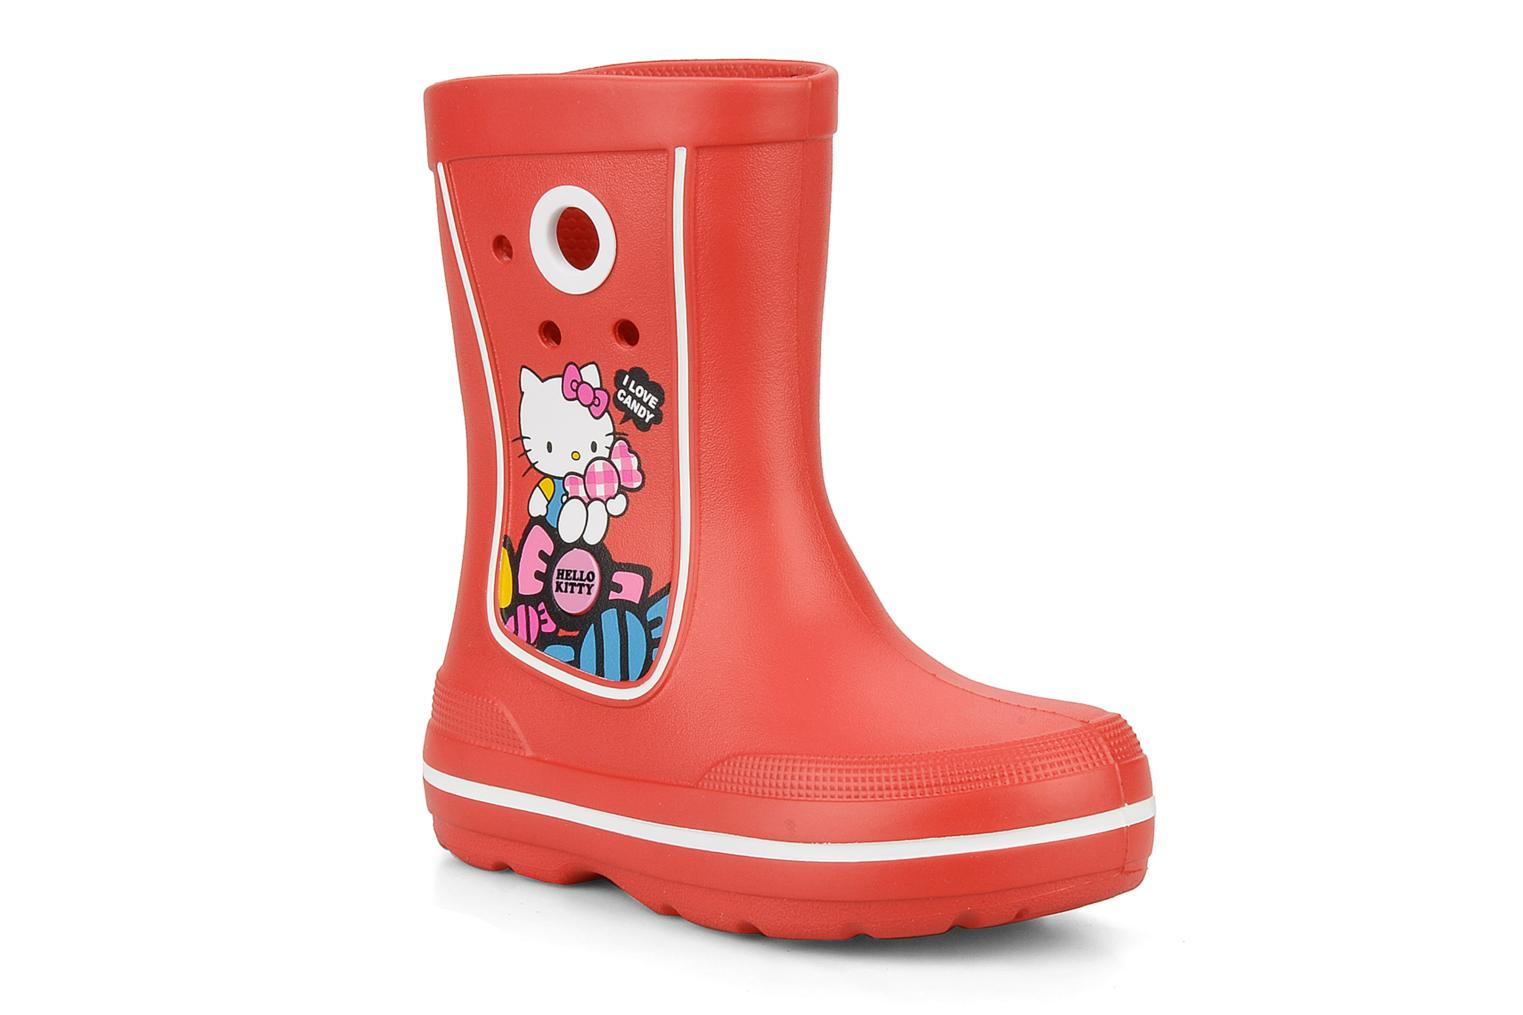 Jaunt hello kitty Red